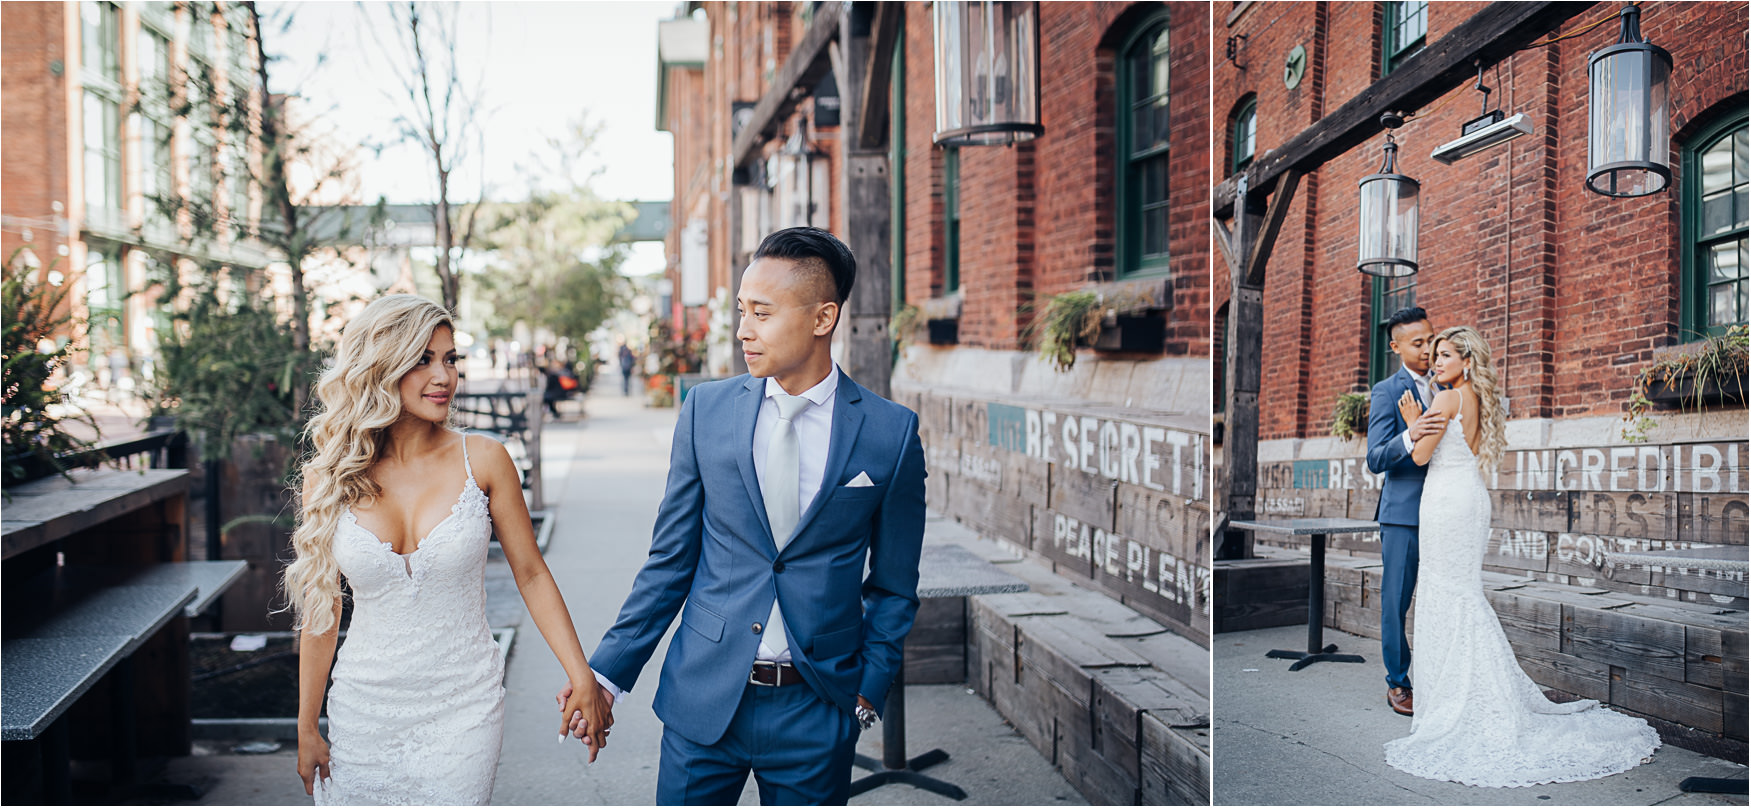 Wedding Formal Photos at the Distillery District in Toronto